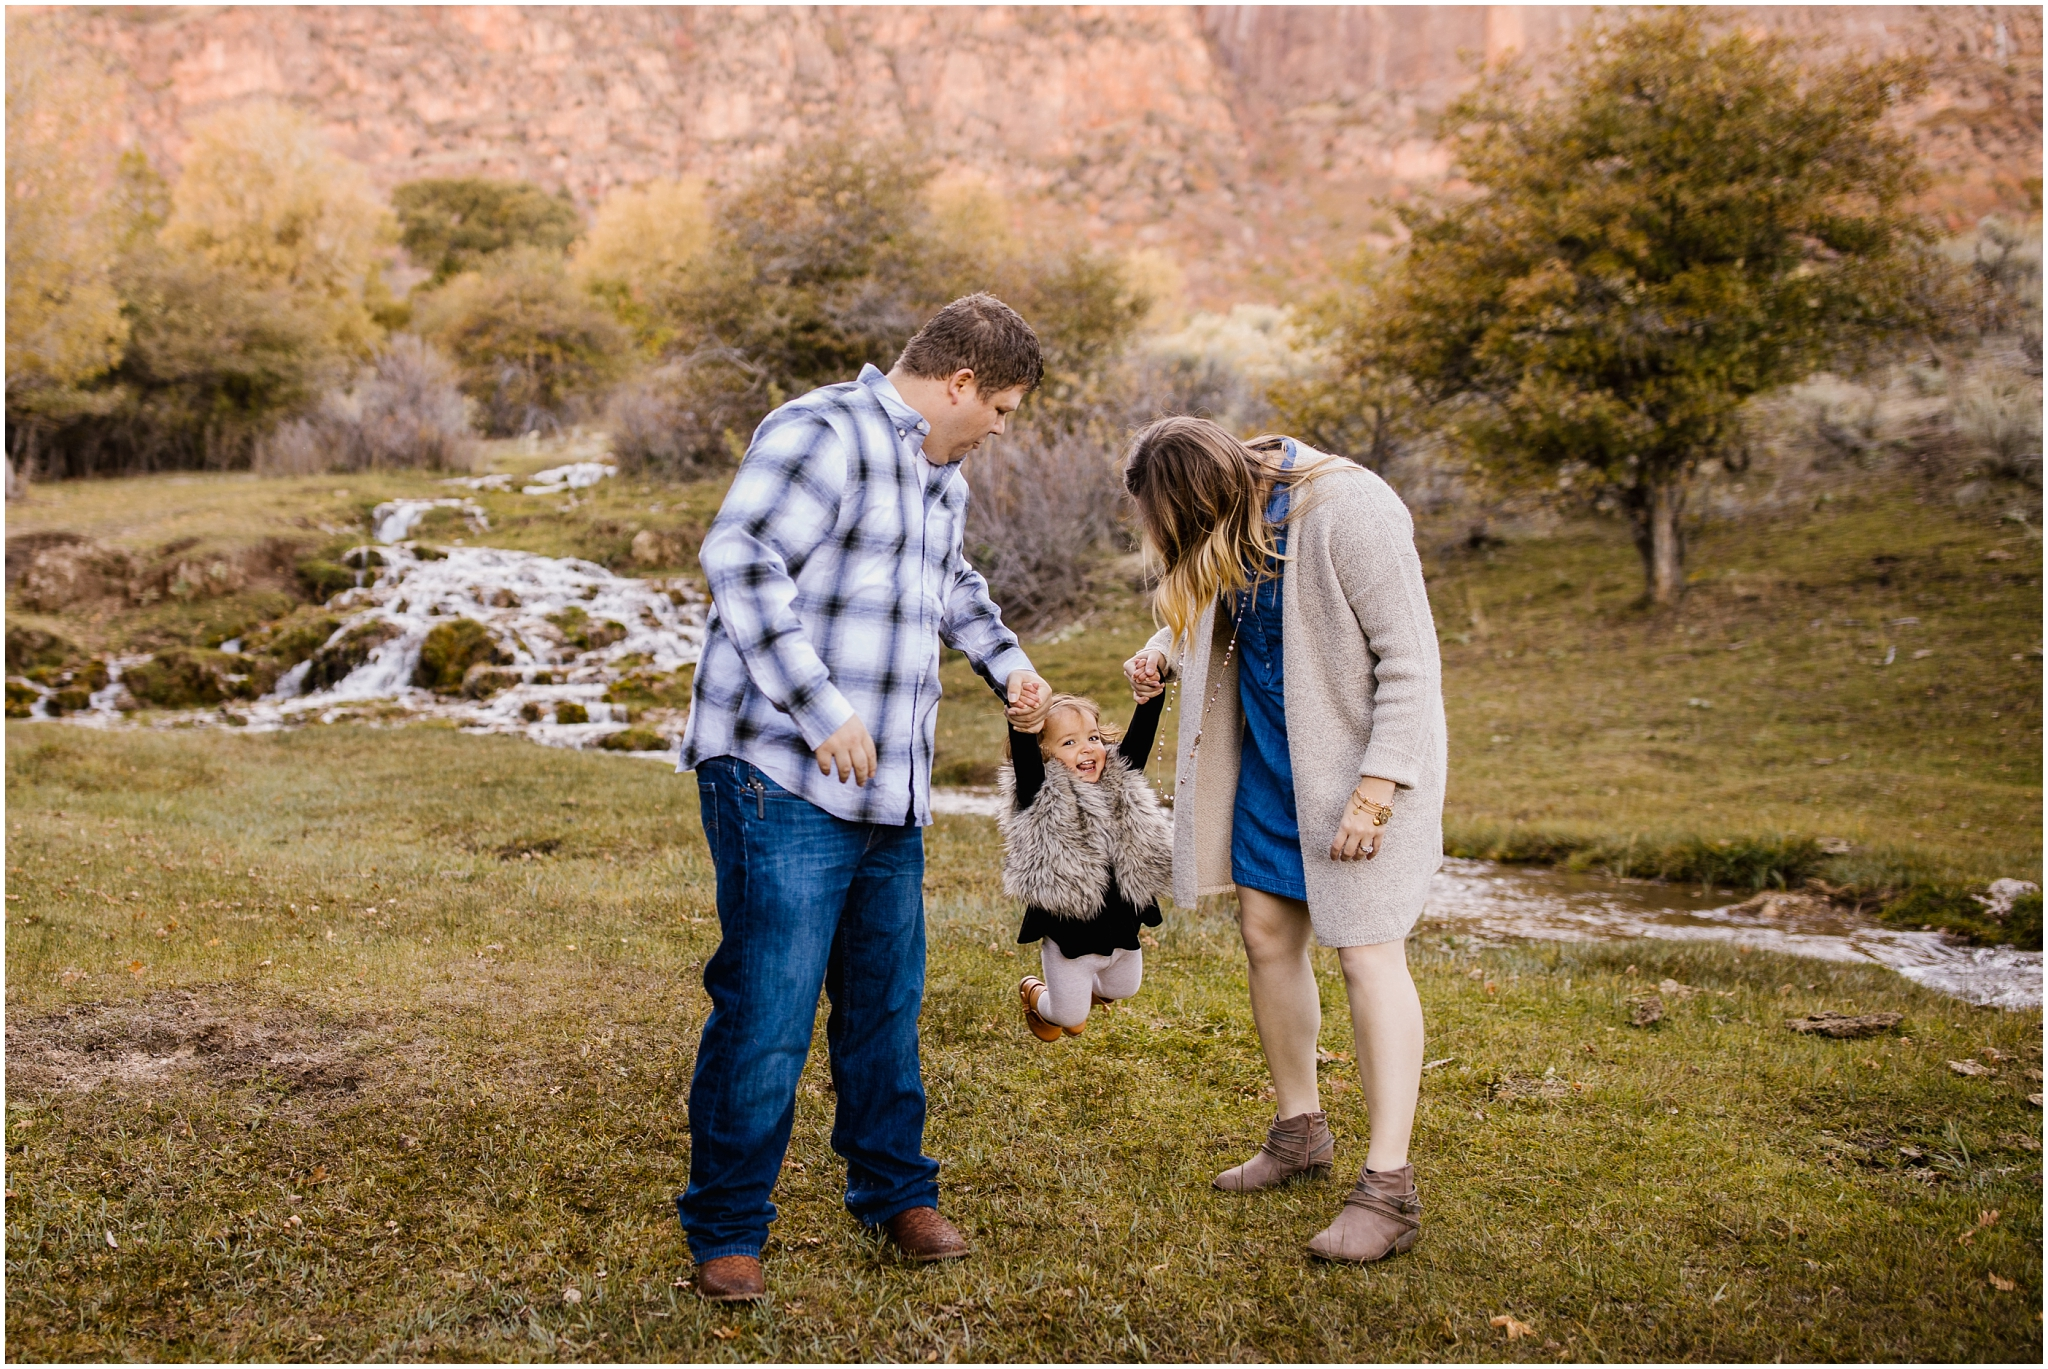 Frandsen-39_Lizzie-B-Imagery-Utah-Family-Photographer-Utah-County-Central-Utah-Park-City-Salt-Lake-City.jpg